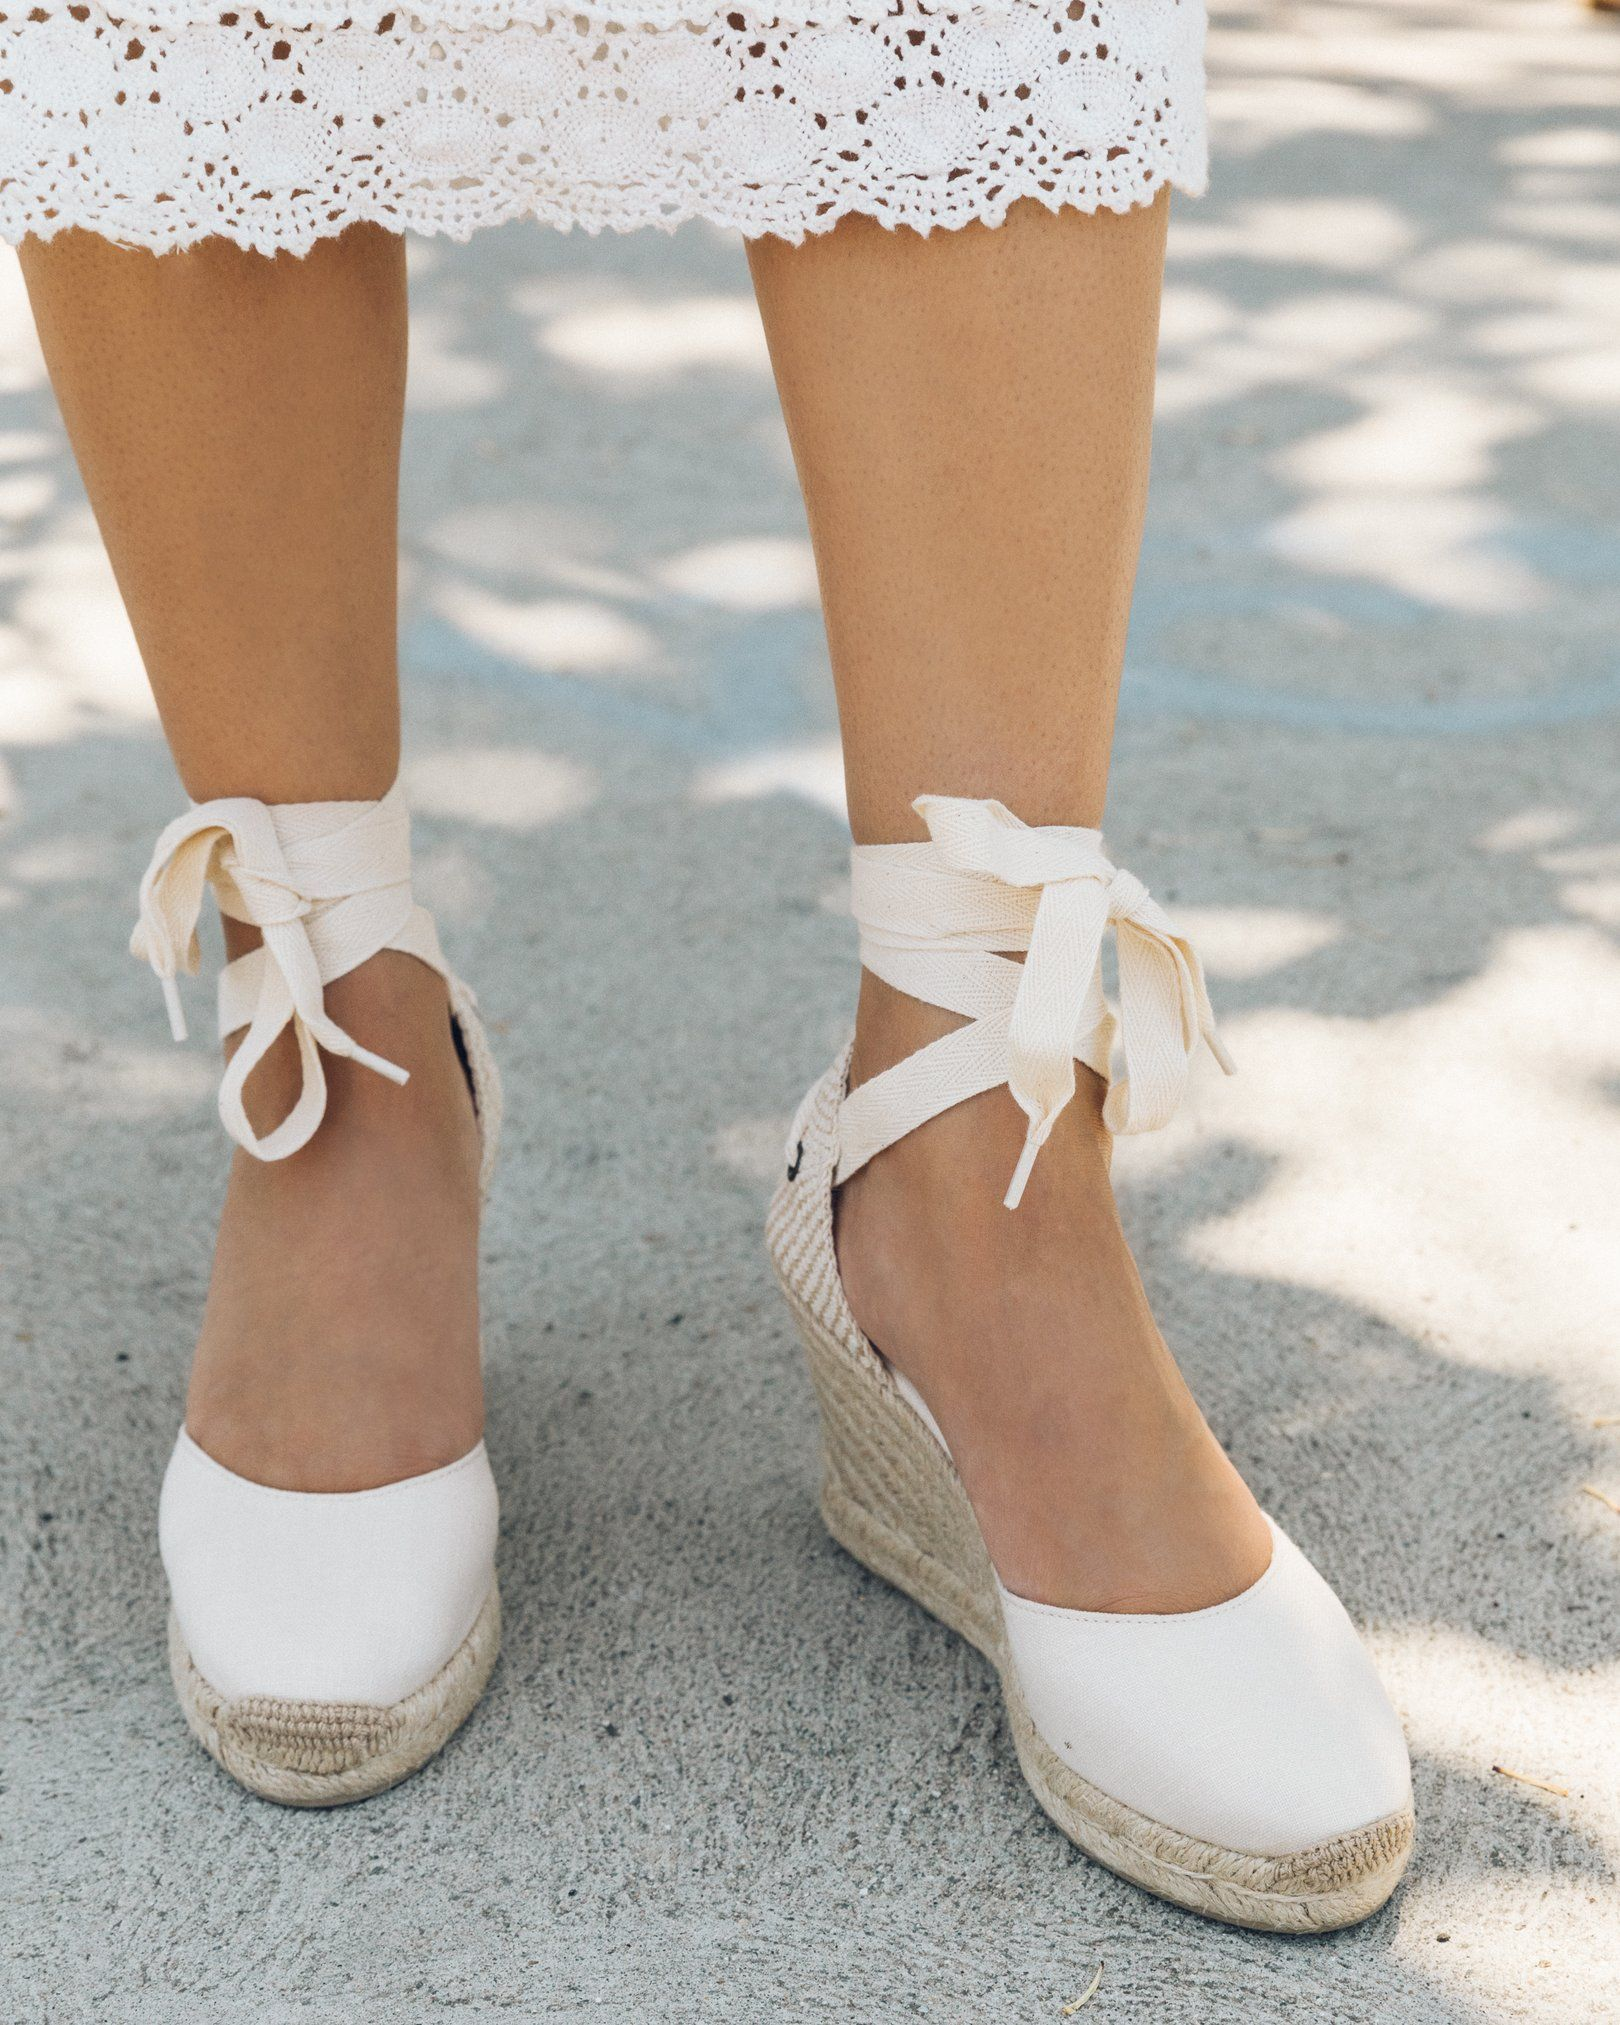 340ffa0aae4 Classic Tall Wedge - Blush / 5 in 2019   Wedges   Espadrille shoes ...